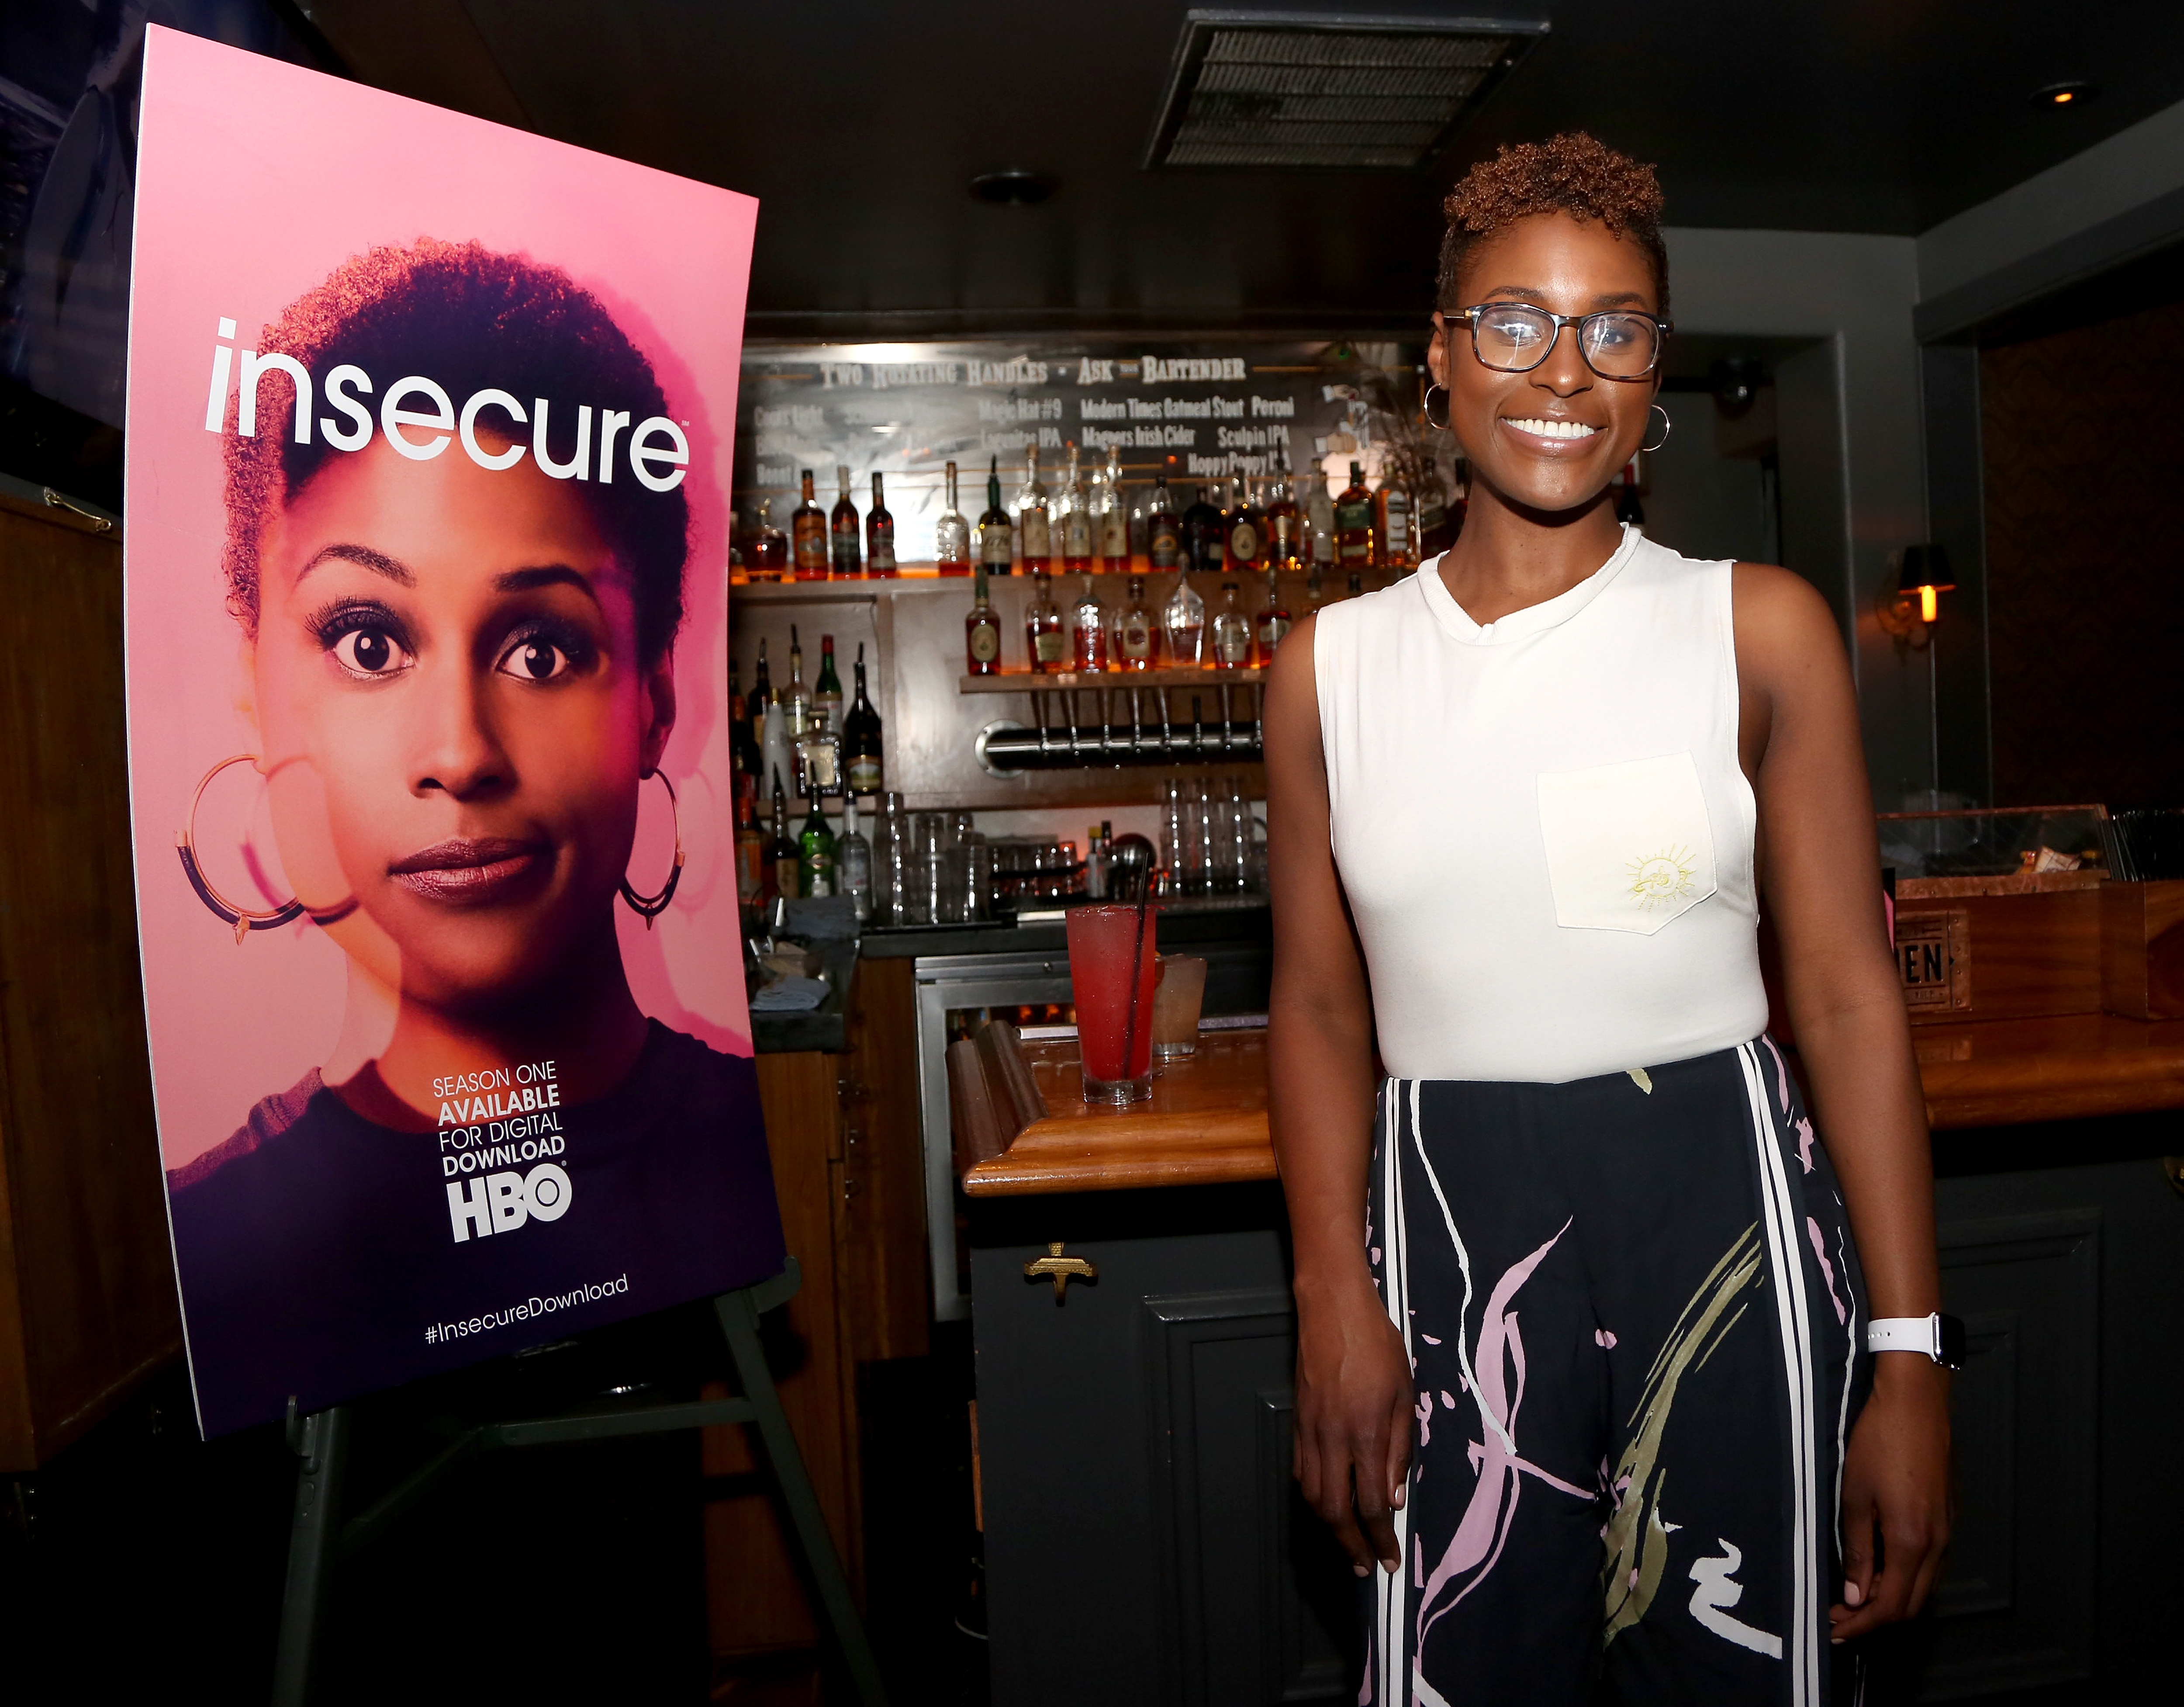 Issa Rae Attends HBO's Insecure Takeover at West Hollywood's The Den on Sunset in Celebration of Digital Download Release